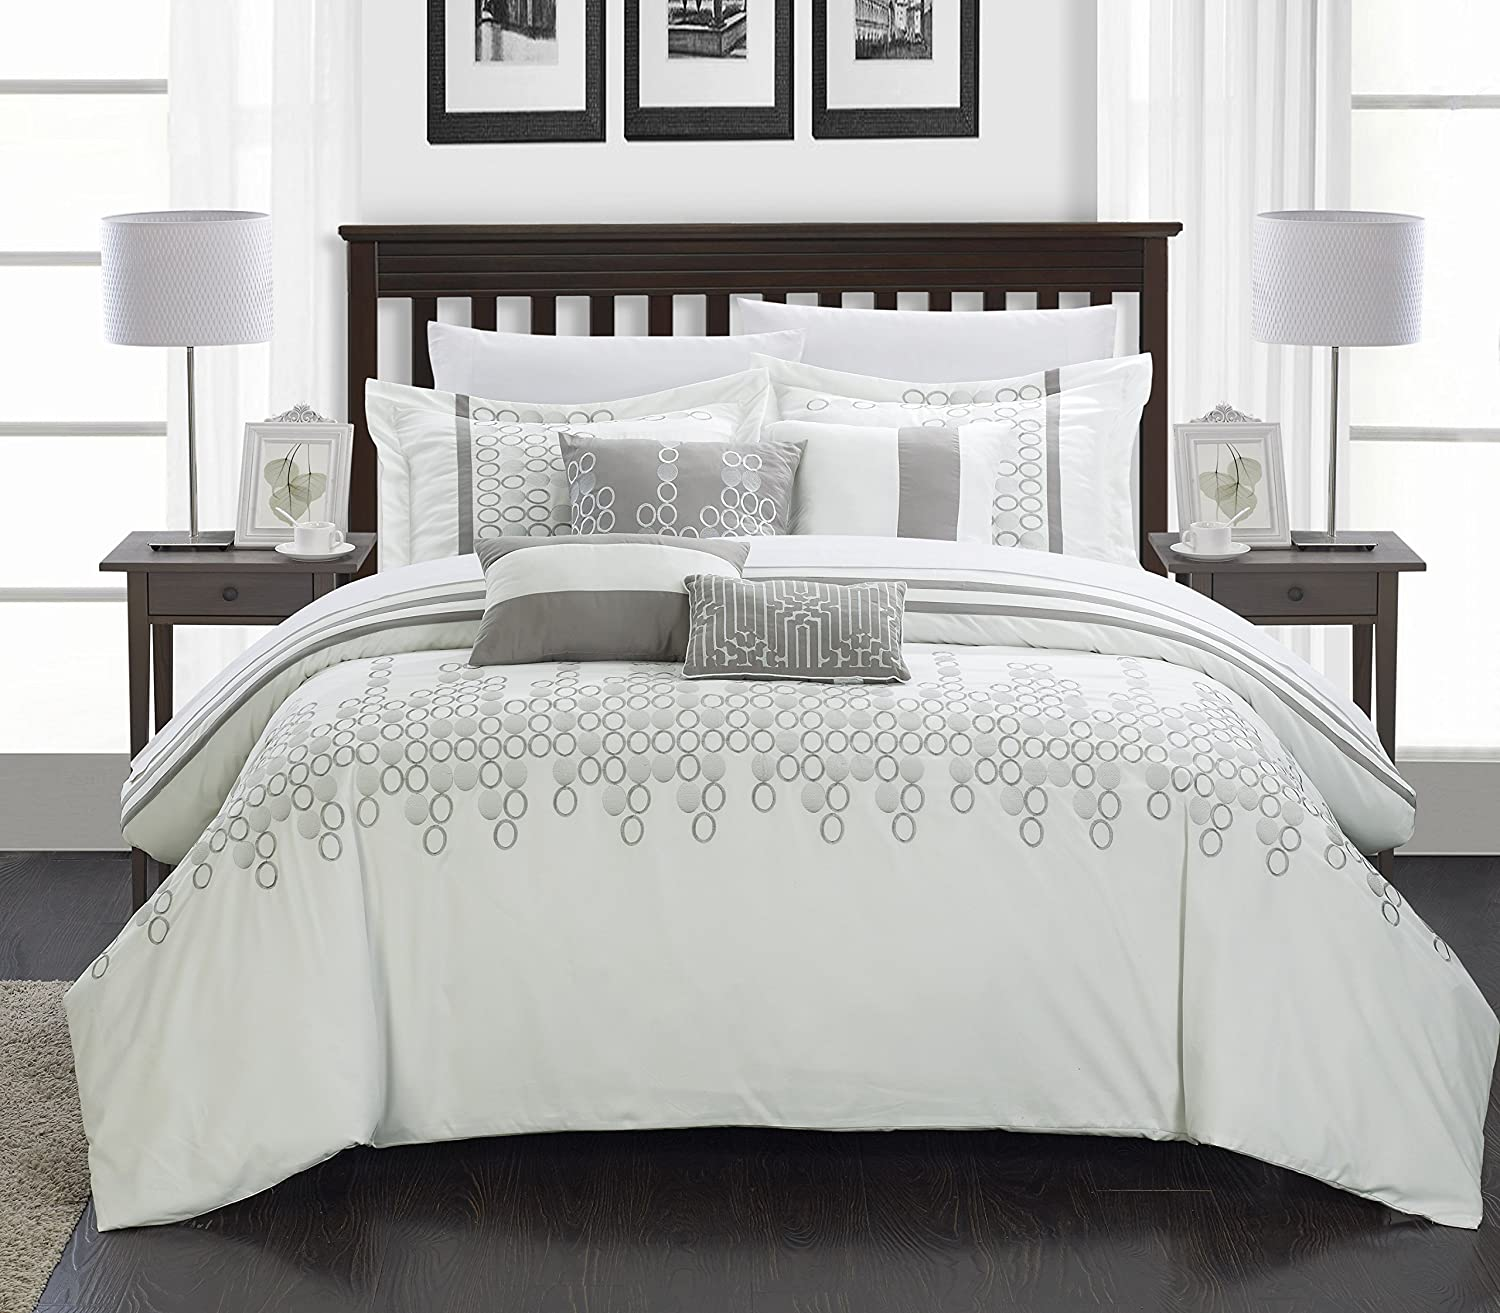 ip overfilled com walmart set reversible comforter perugia printed home oversized sets chic queen piece